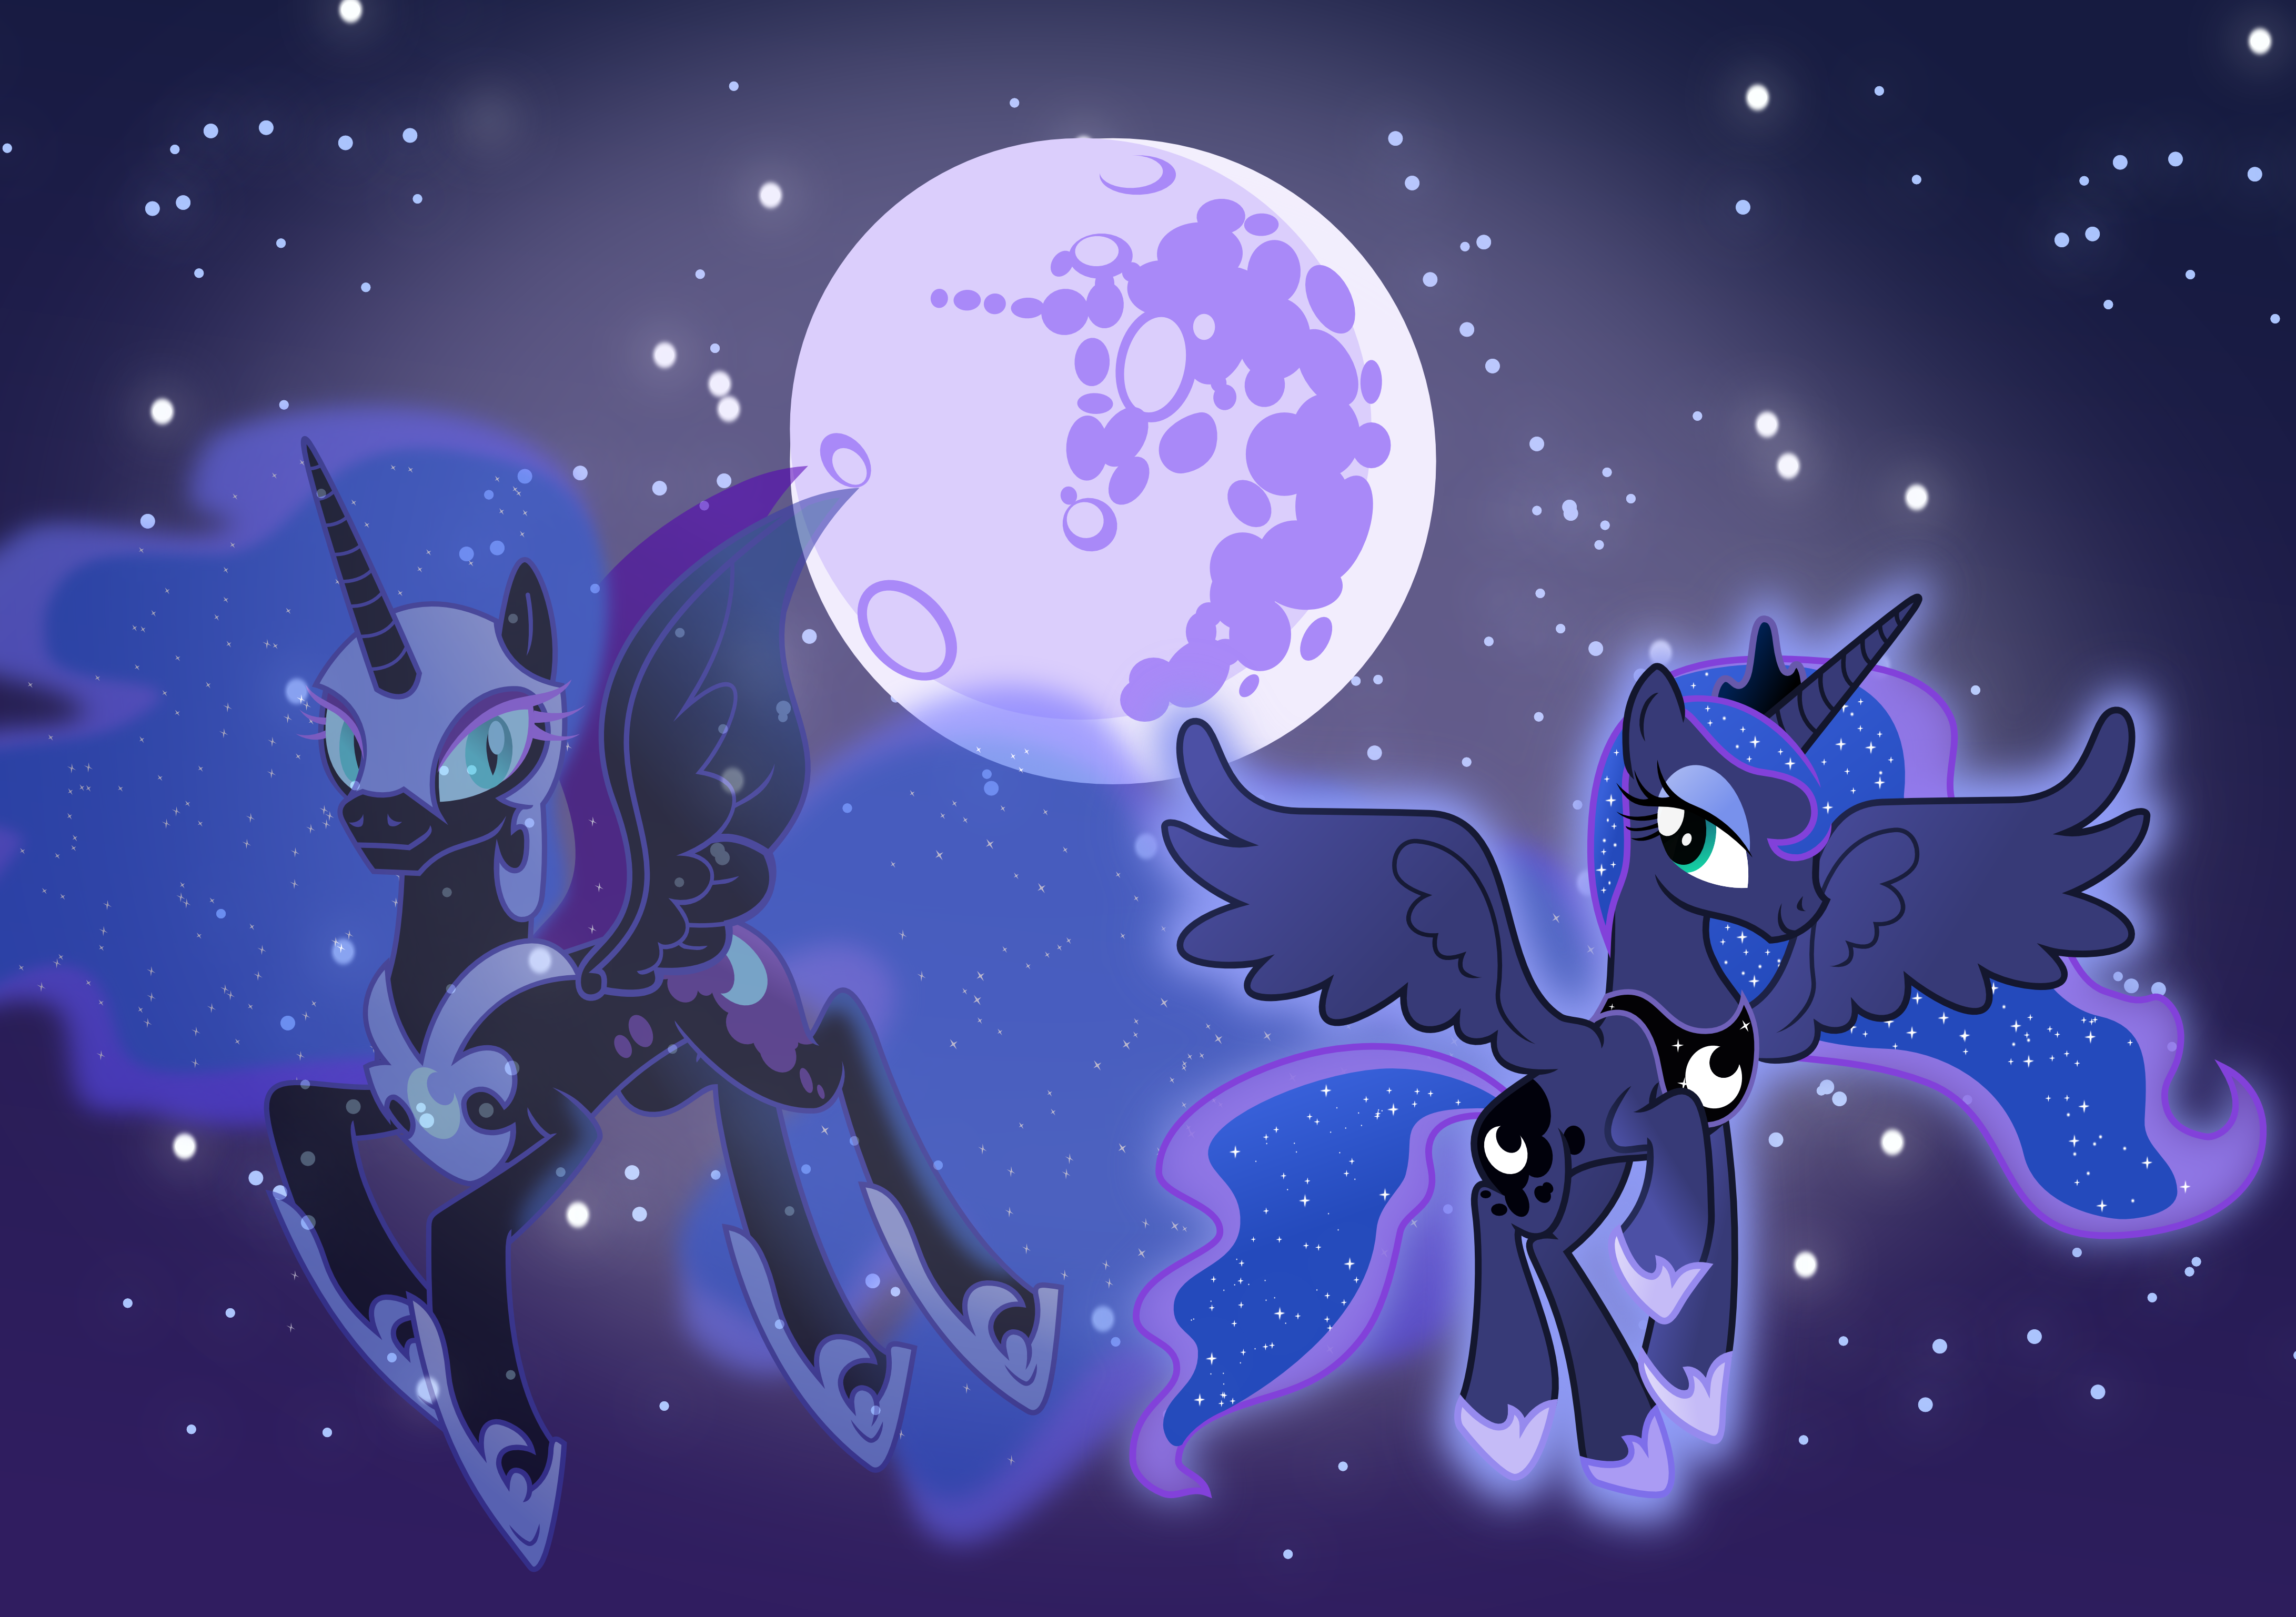 Princess Luna and Nightmare Moon by Vector-Brony on DeviantArt